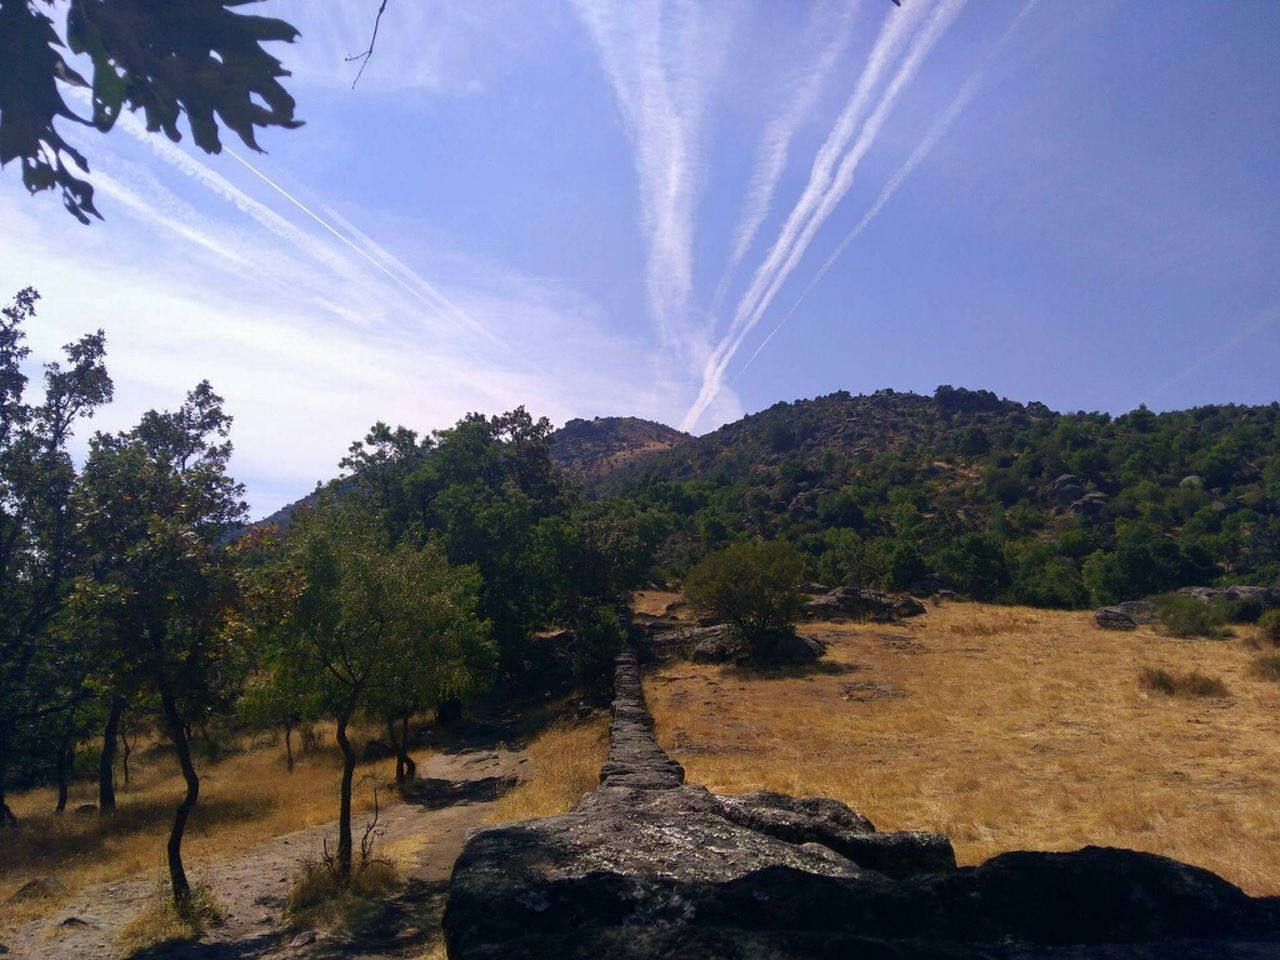 tree, nature, beauty in nature, sky, no people, scenics, growth, outdoors, day, vapor trail